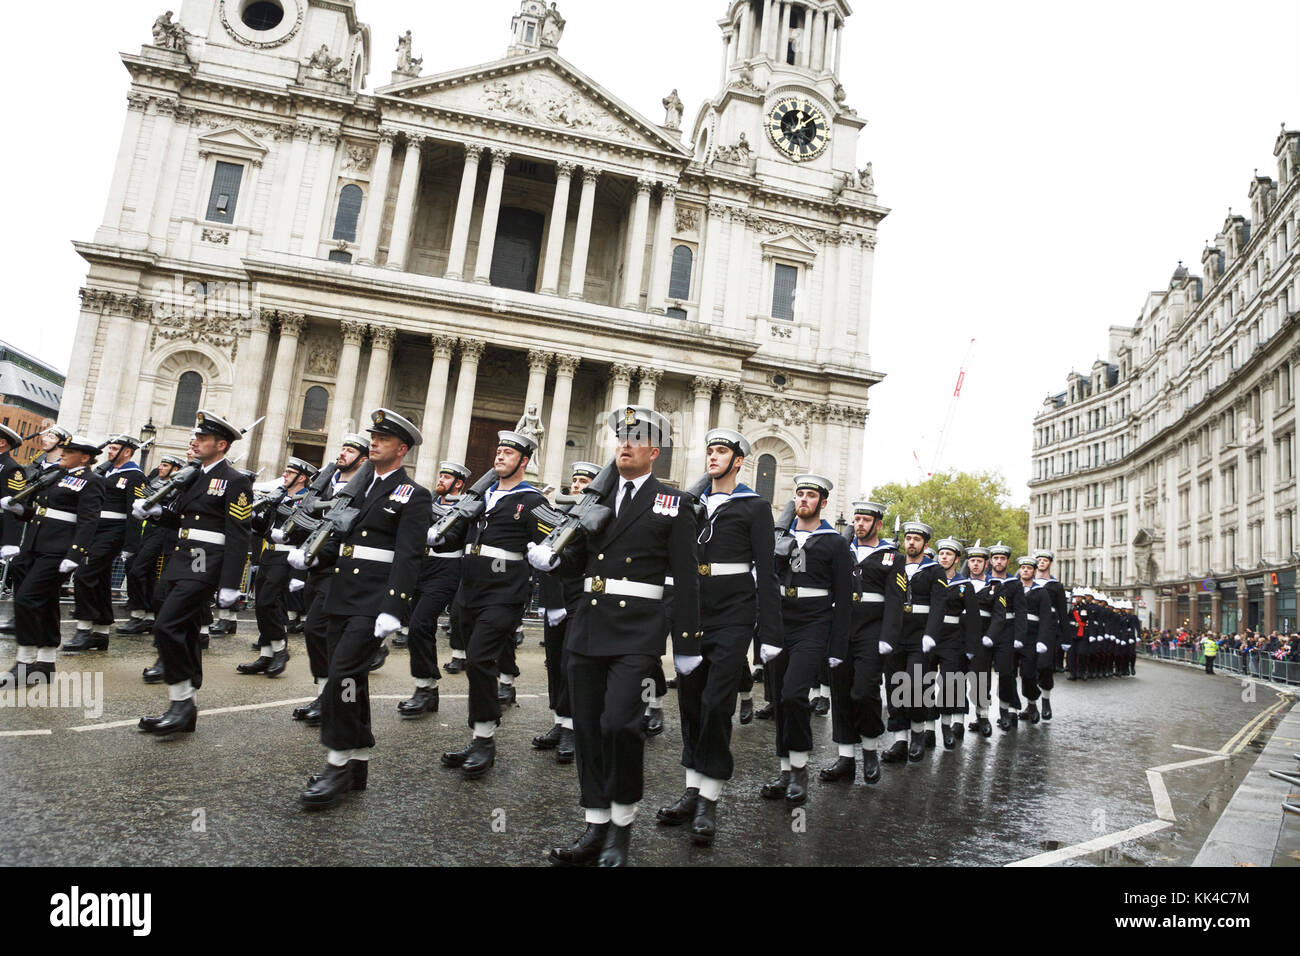 London military parade: The Royal Navy, RN, marching passed St Paul's Cathedral, at the UK London Lord Mayor's show. - Stock Image